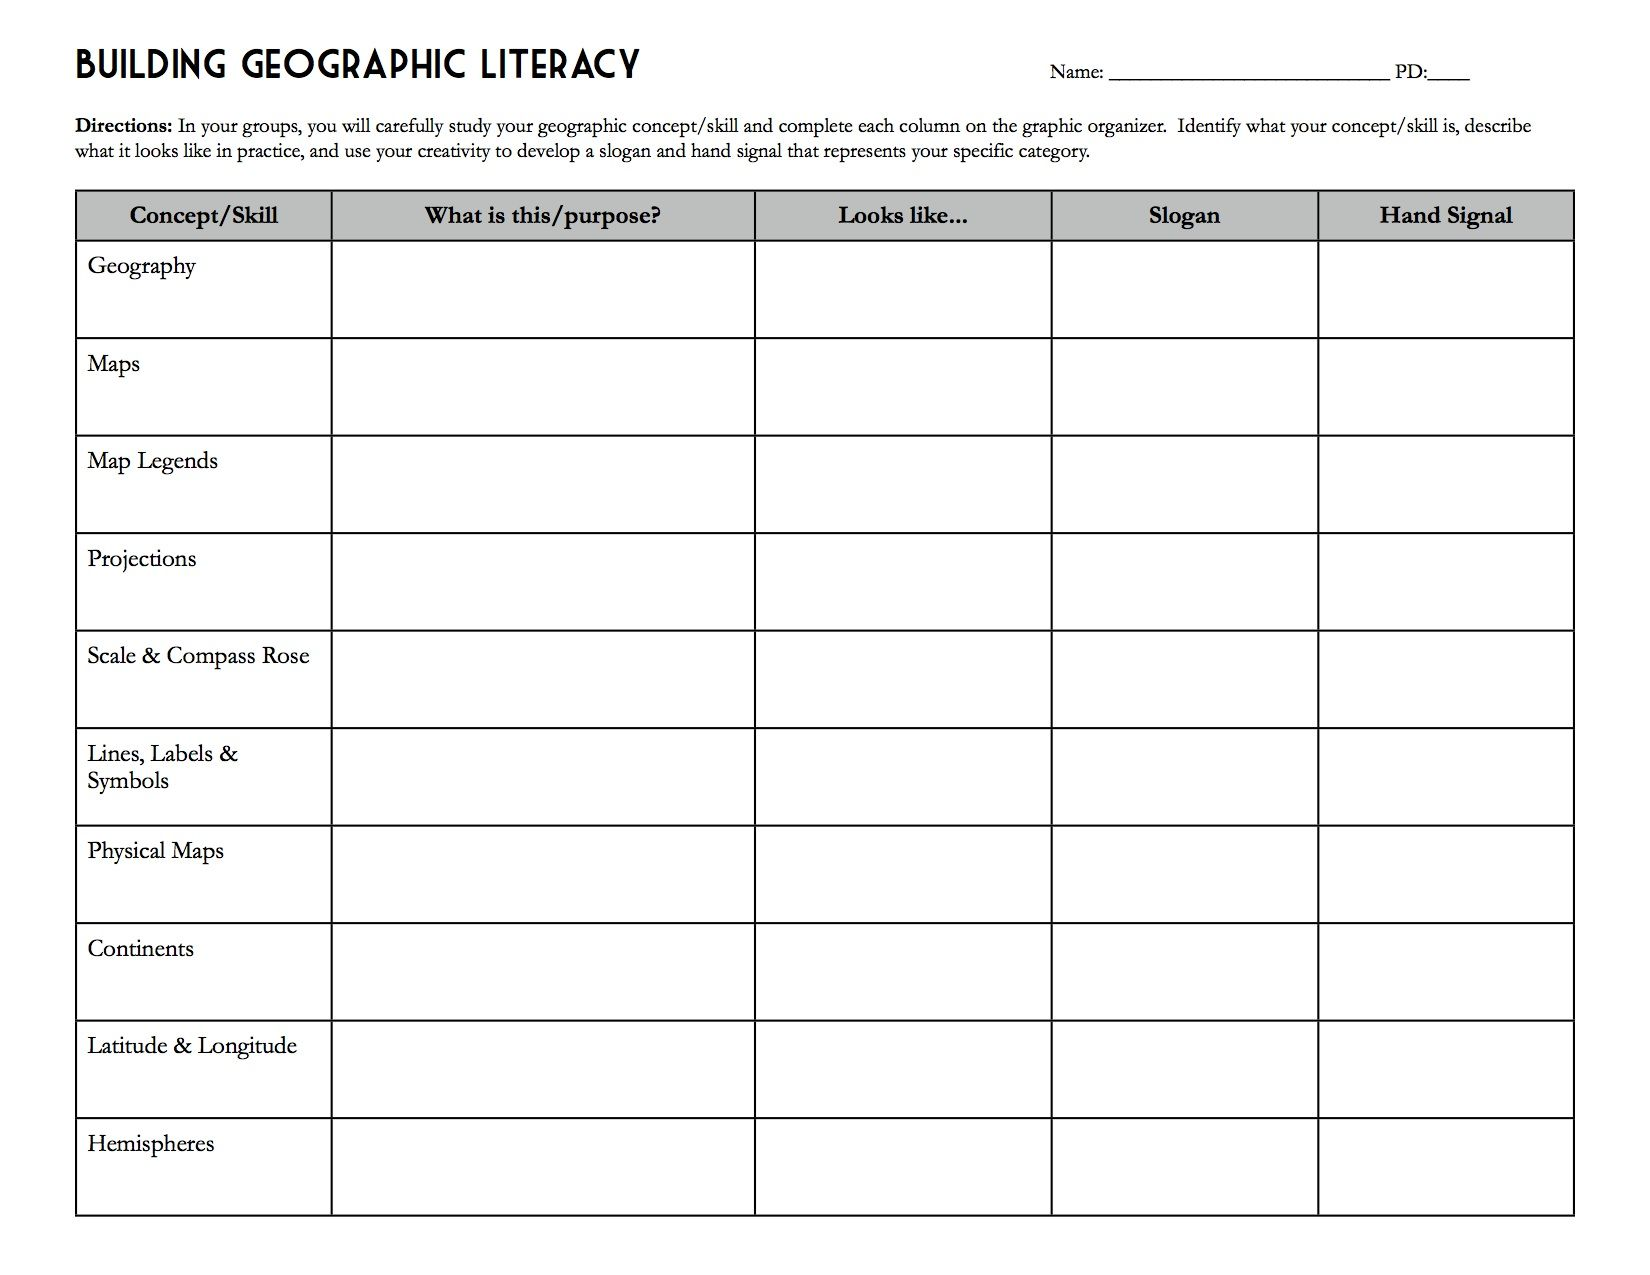 worksheet Human Population Worksheet building geographic literacy worksheet martins ap human geography